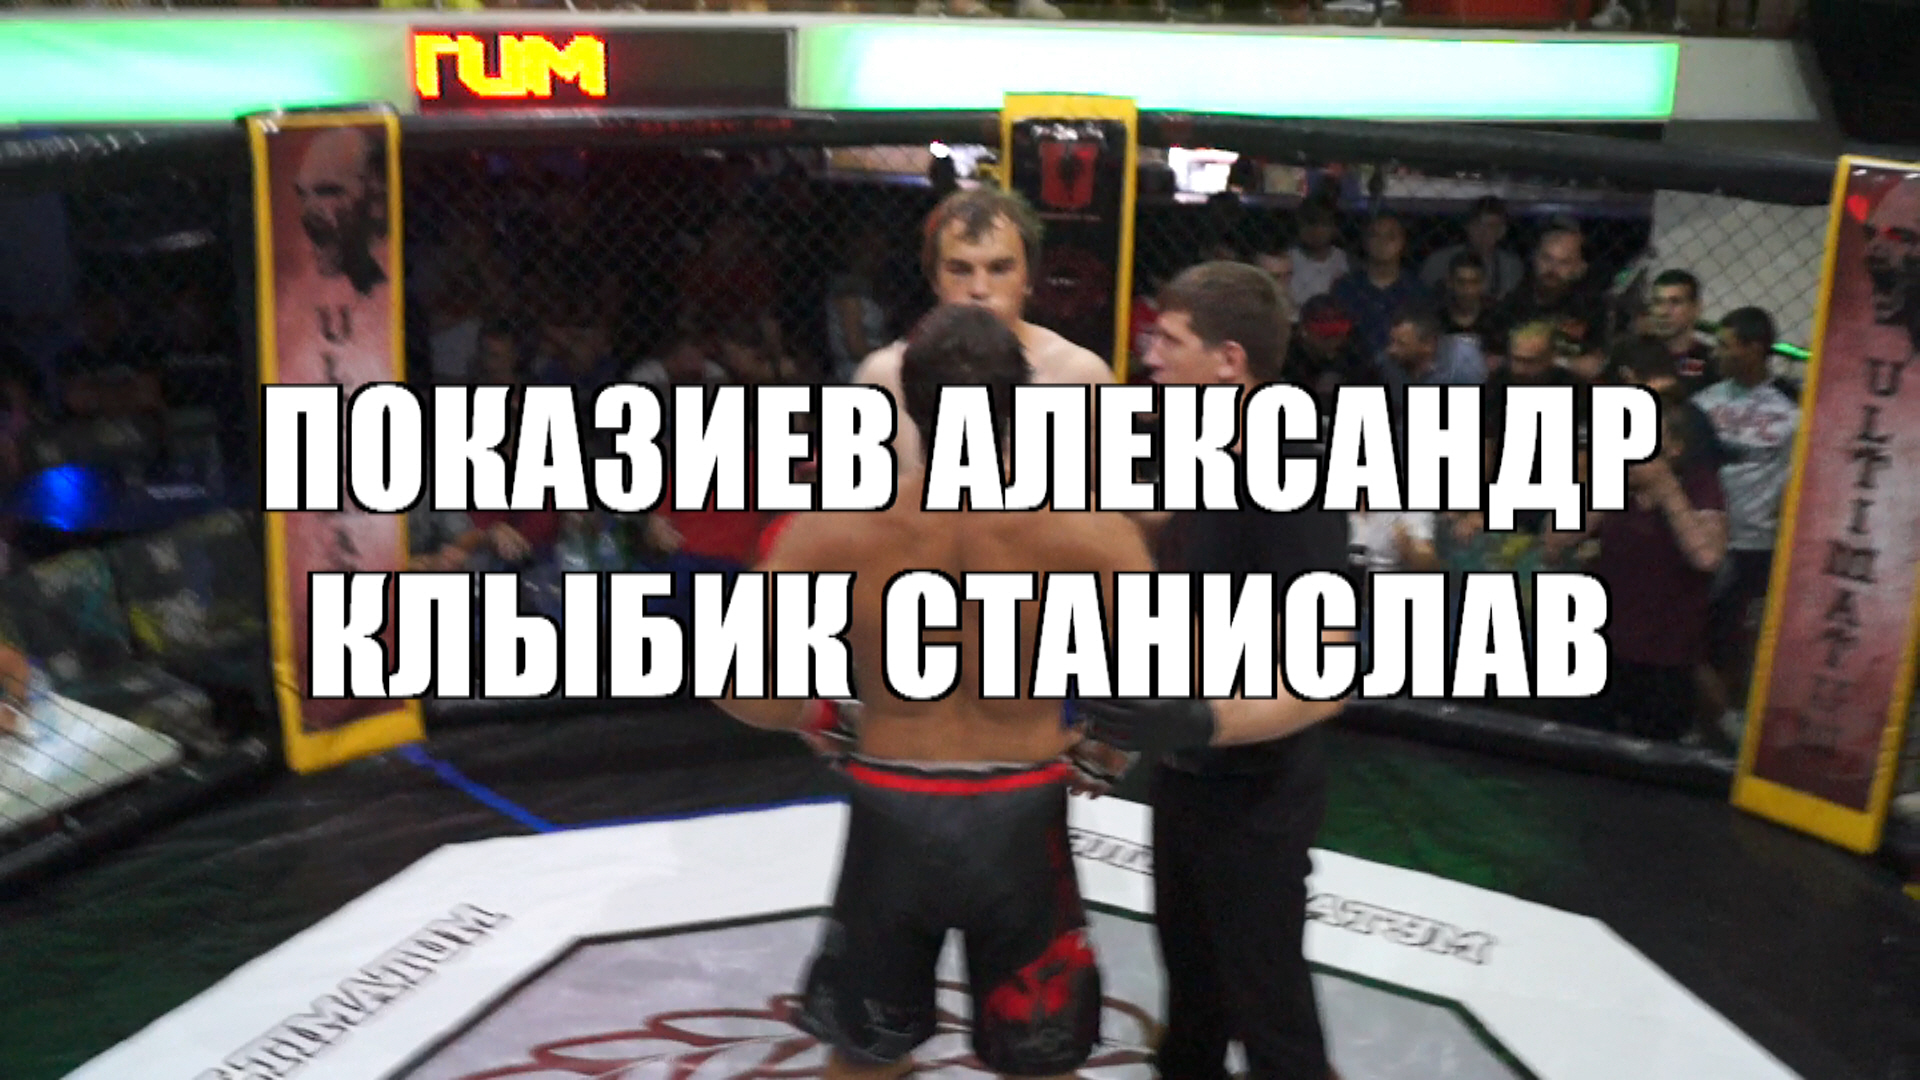 Бой Клыбик Станислав vs. Показиев Александр. ULTIMATUM 3